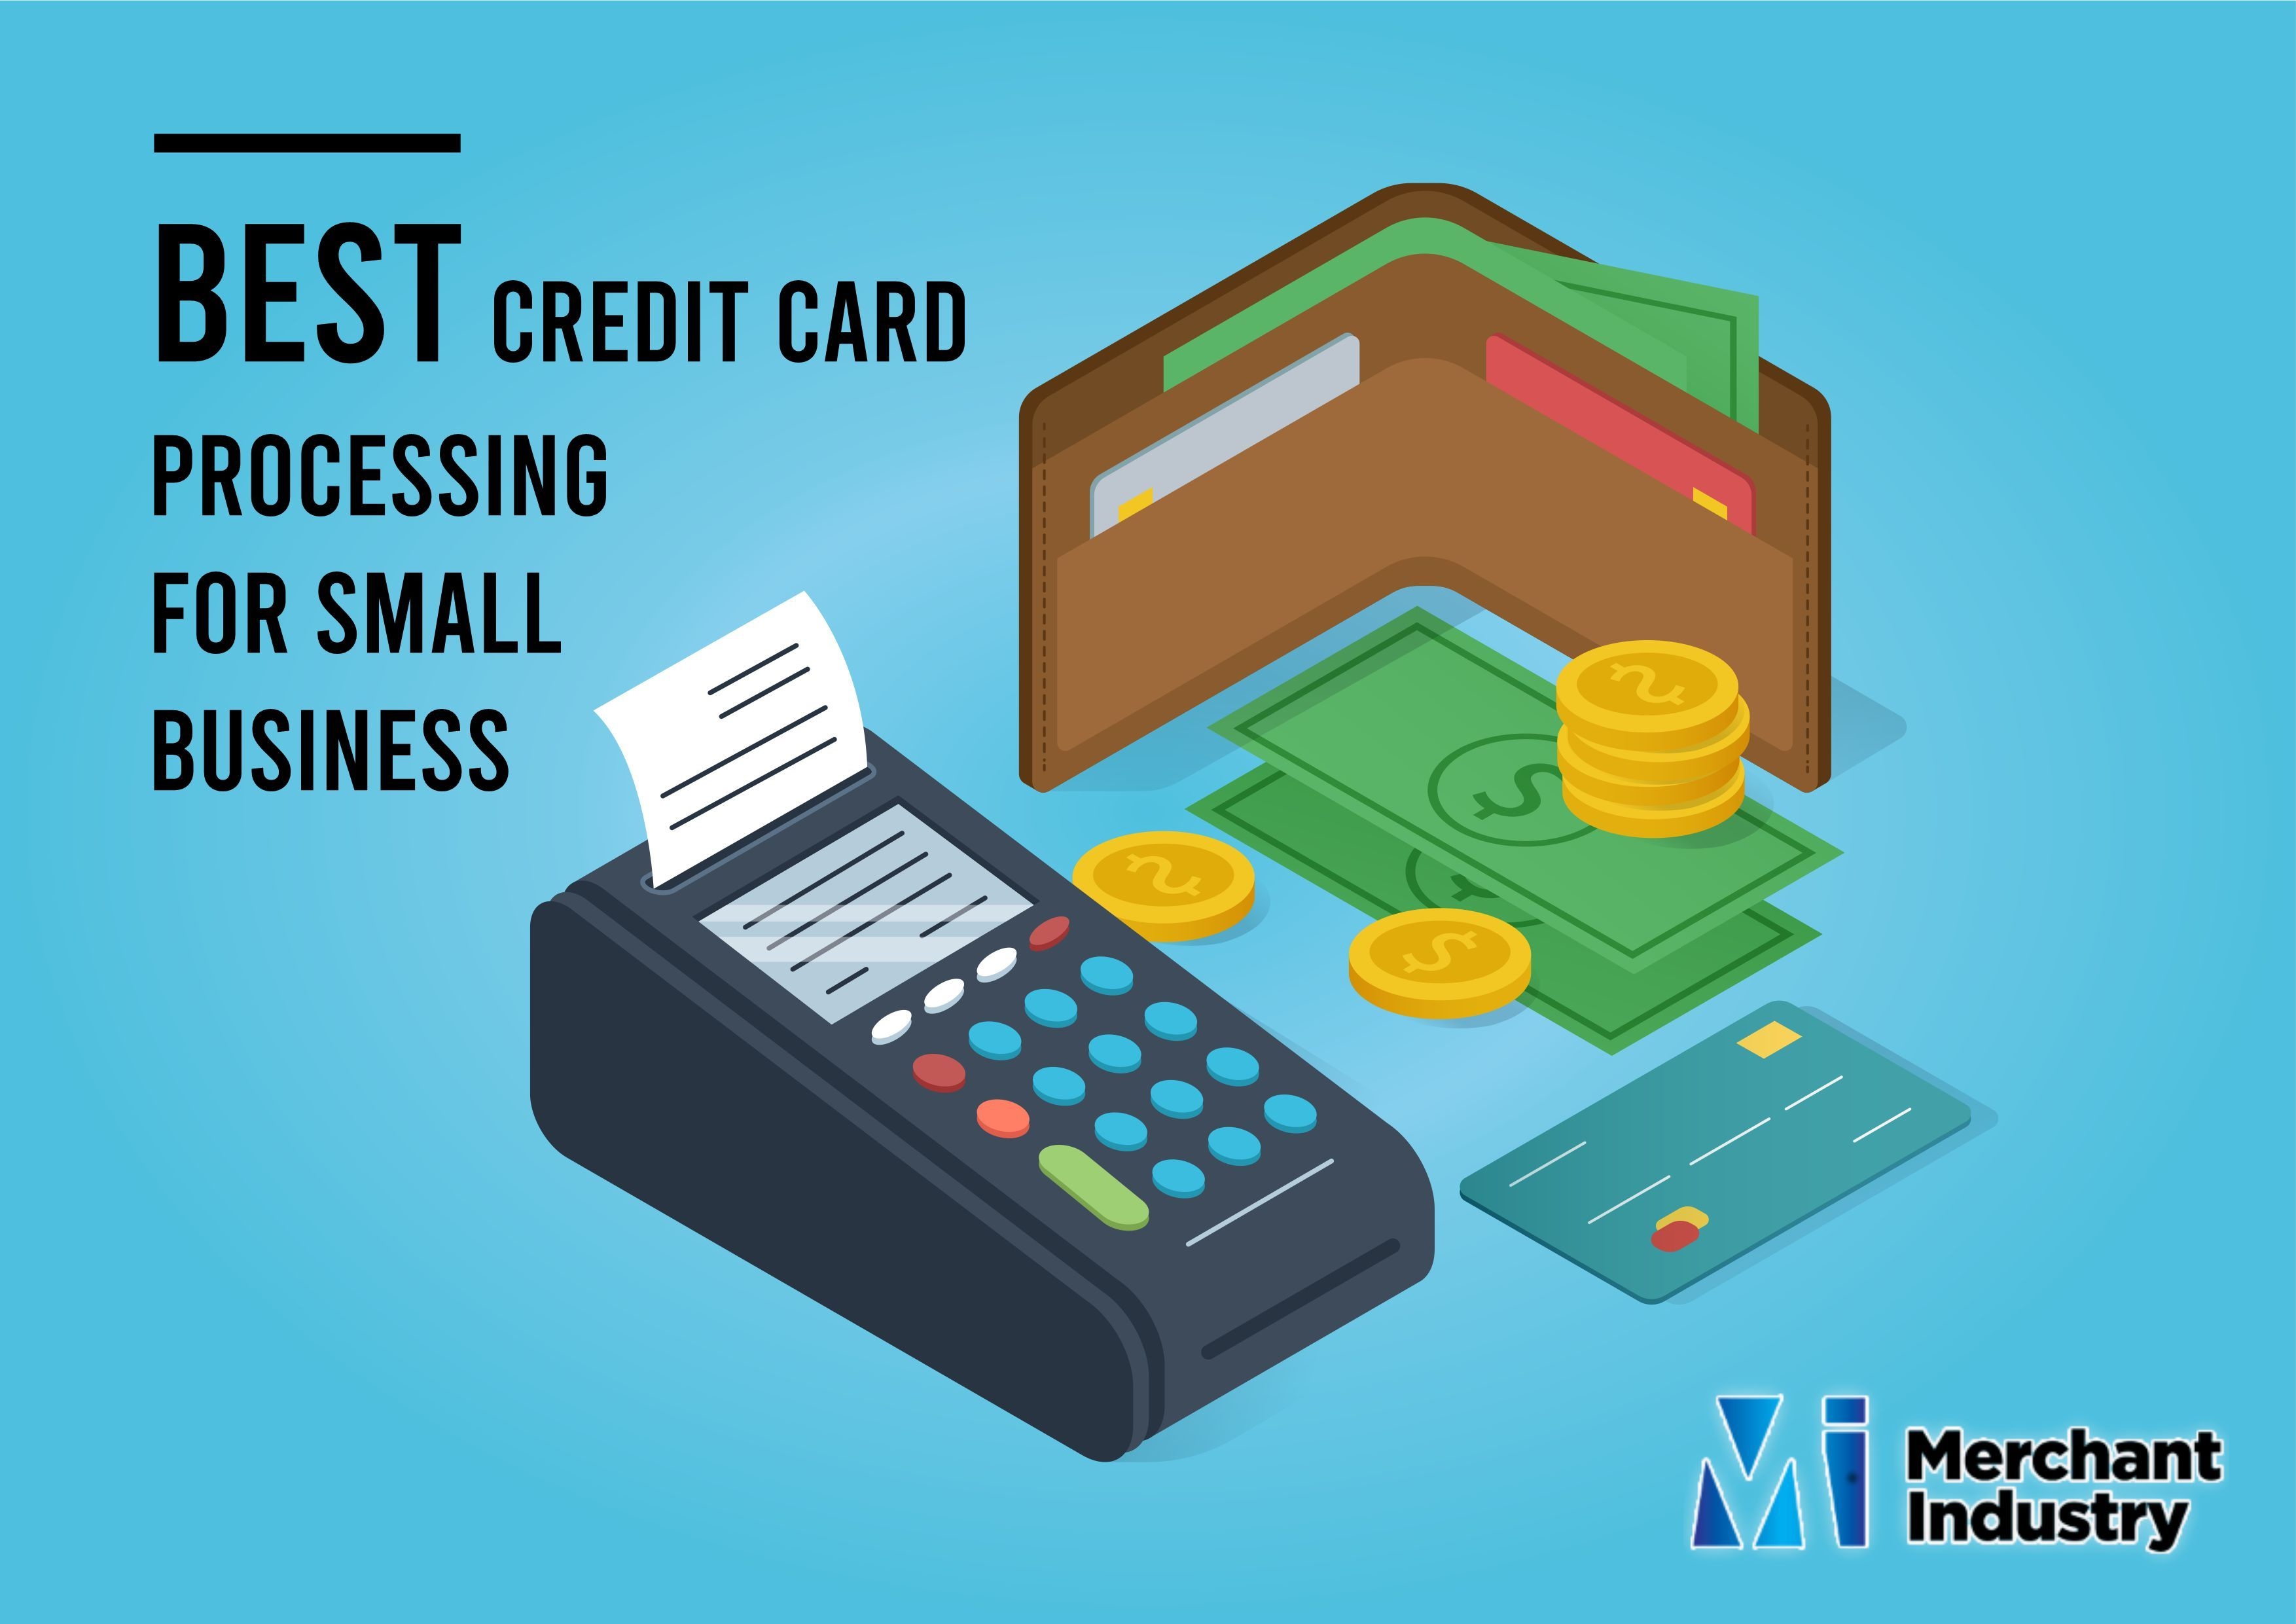 Best Credit Card Processing For Small Business New York Merchant Industry Credit Card Machine Credit Card Credit Card Processing